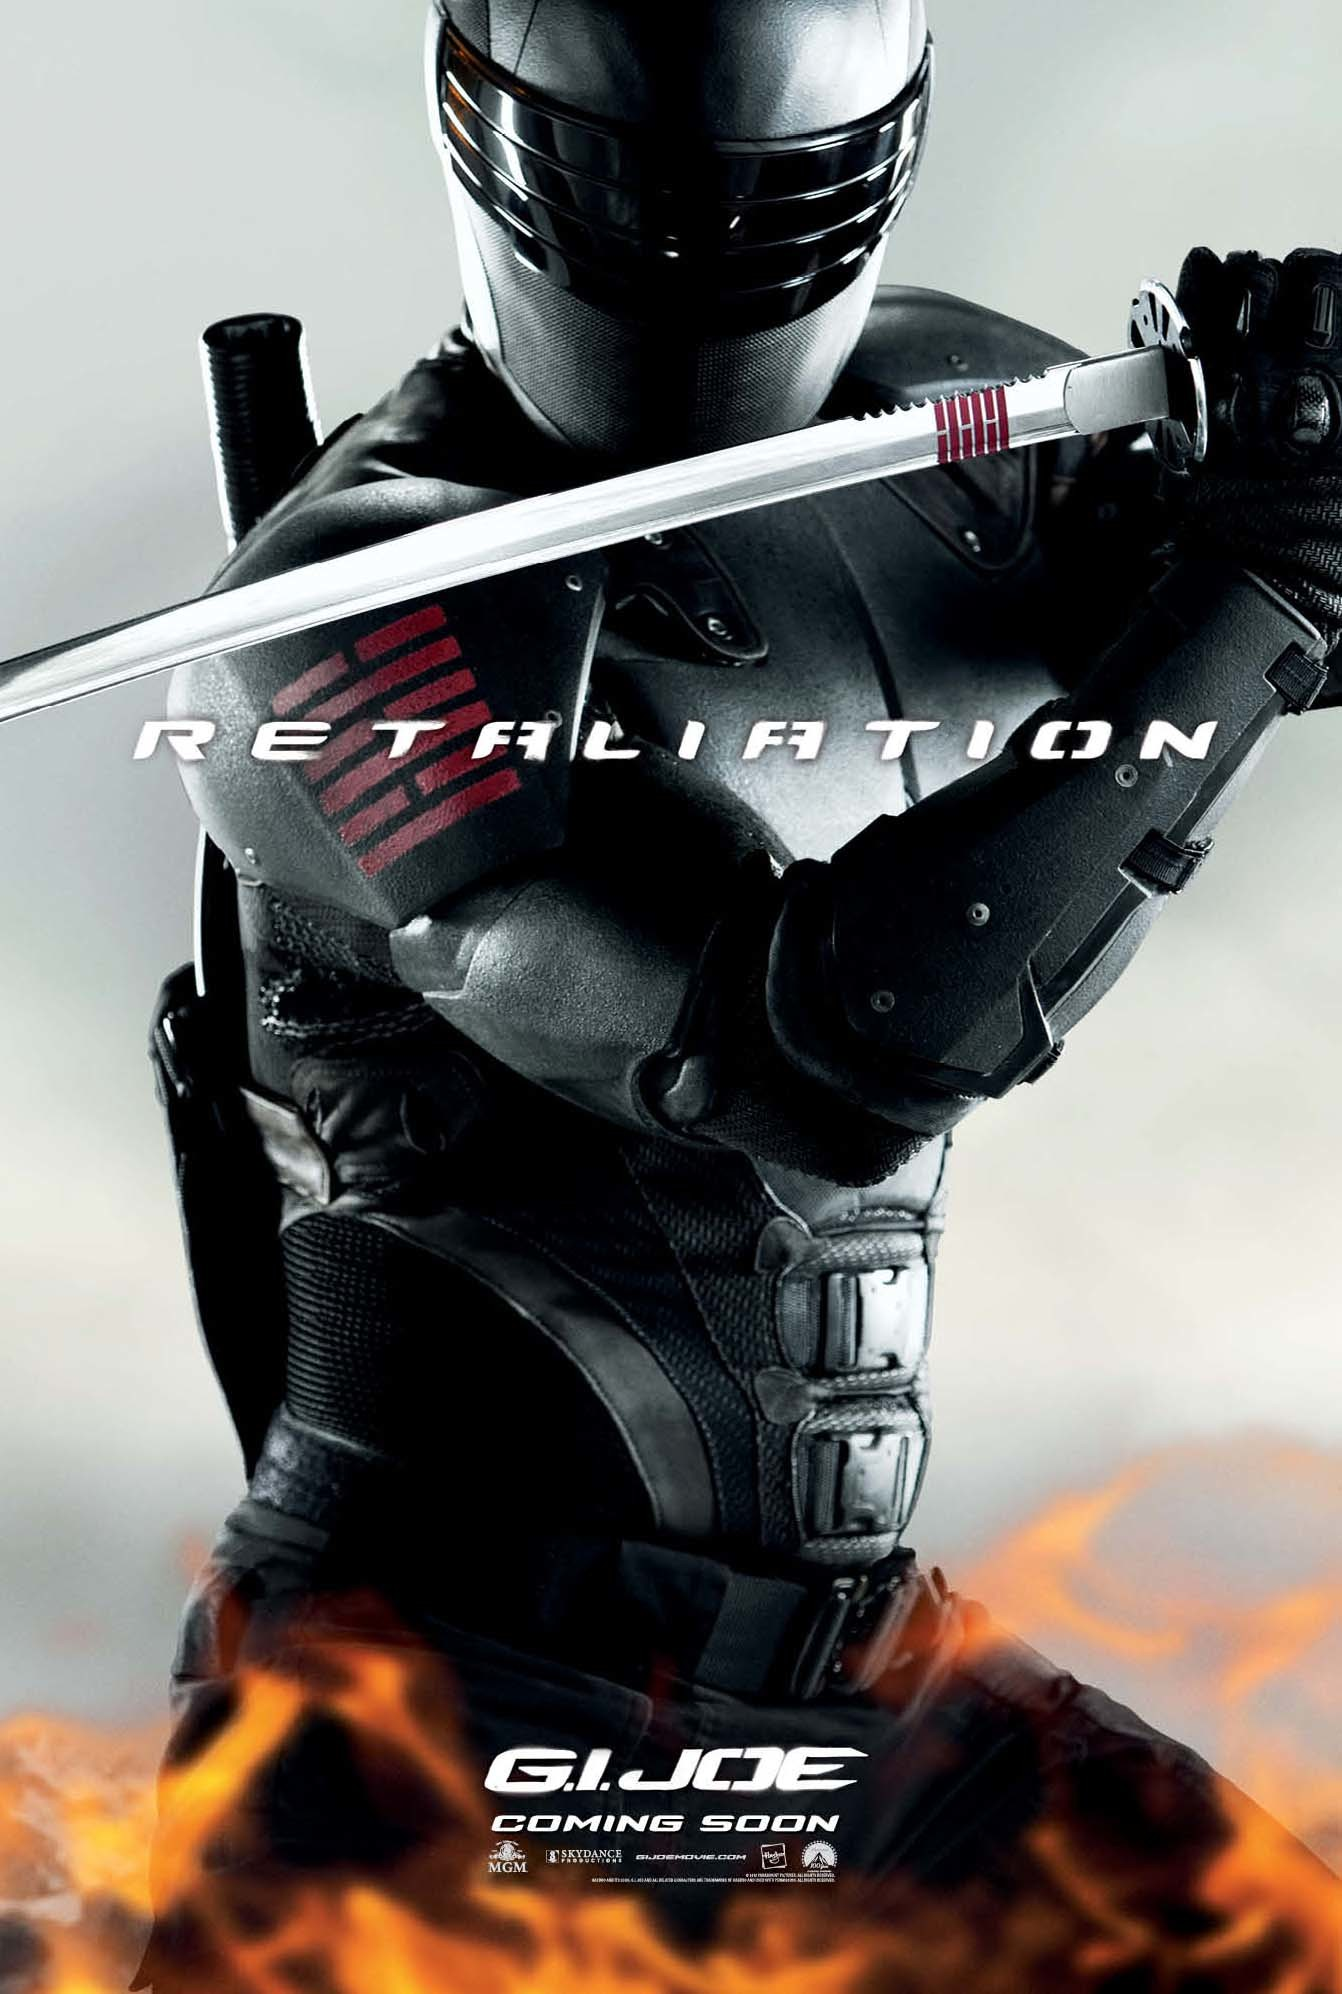 1342x1994 Gi-joe-retaliation-poster-snake-eyes.jpg